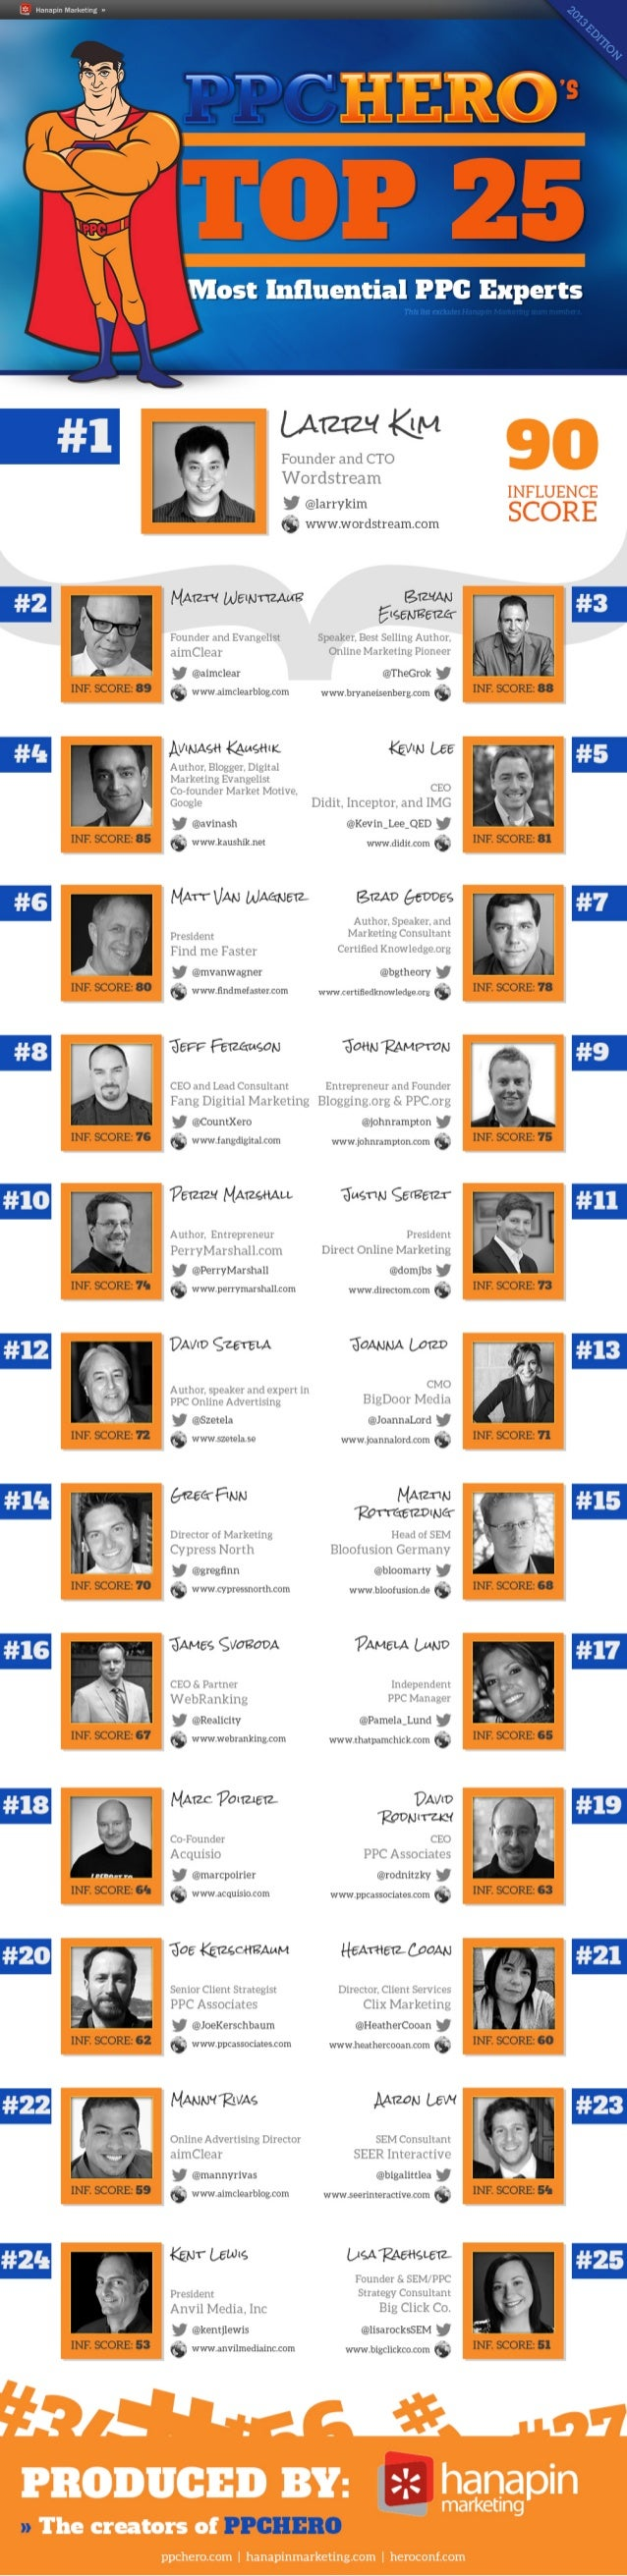 Top 25 Most Influential PPC Experts of 2013